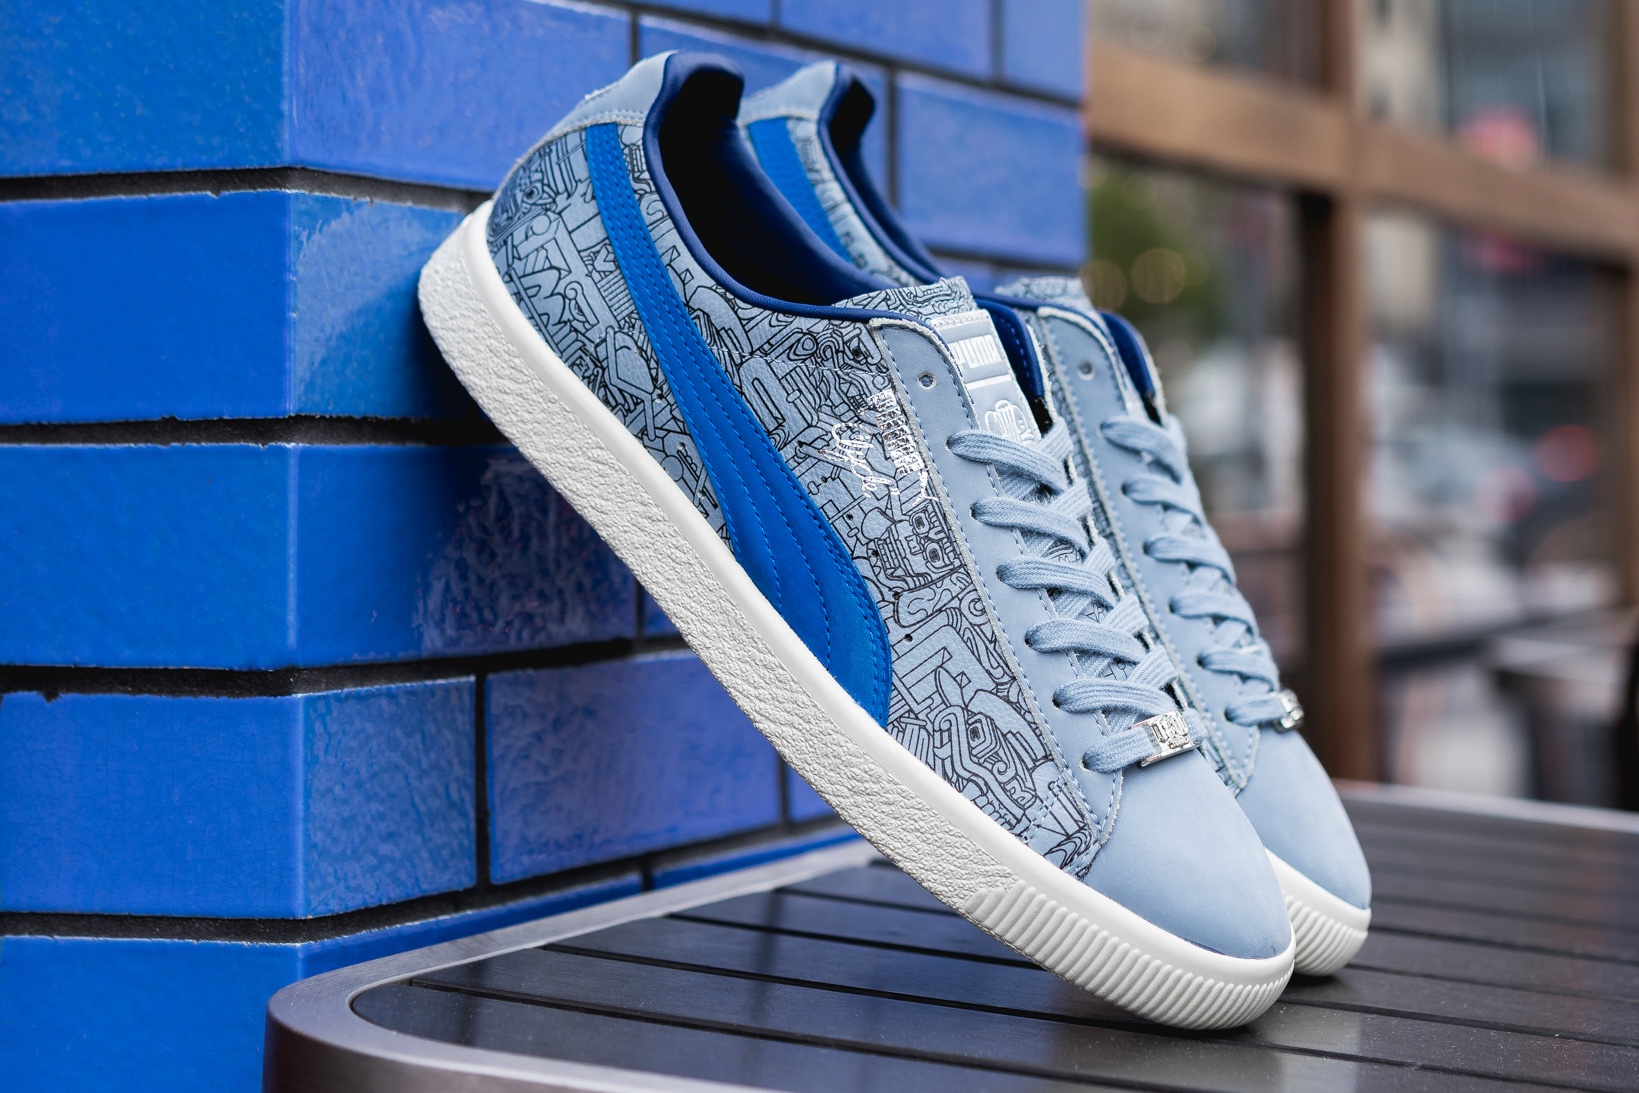 http-%2F%2Fhypebeast.com%2Fimage%2F2017%2F05%2Fsam-rodriguez-1800-tequila-puma-clyde-launch-party-2.jpg